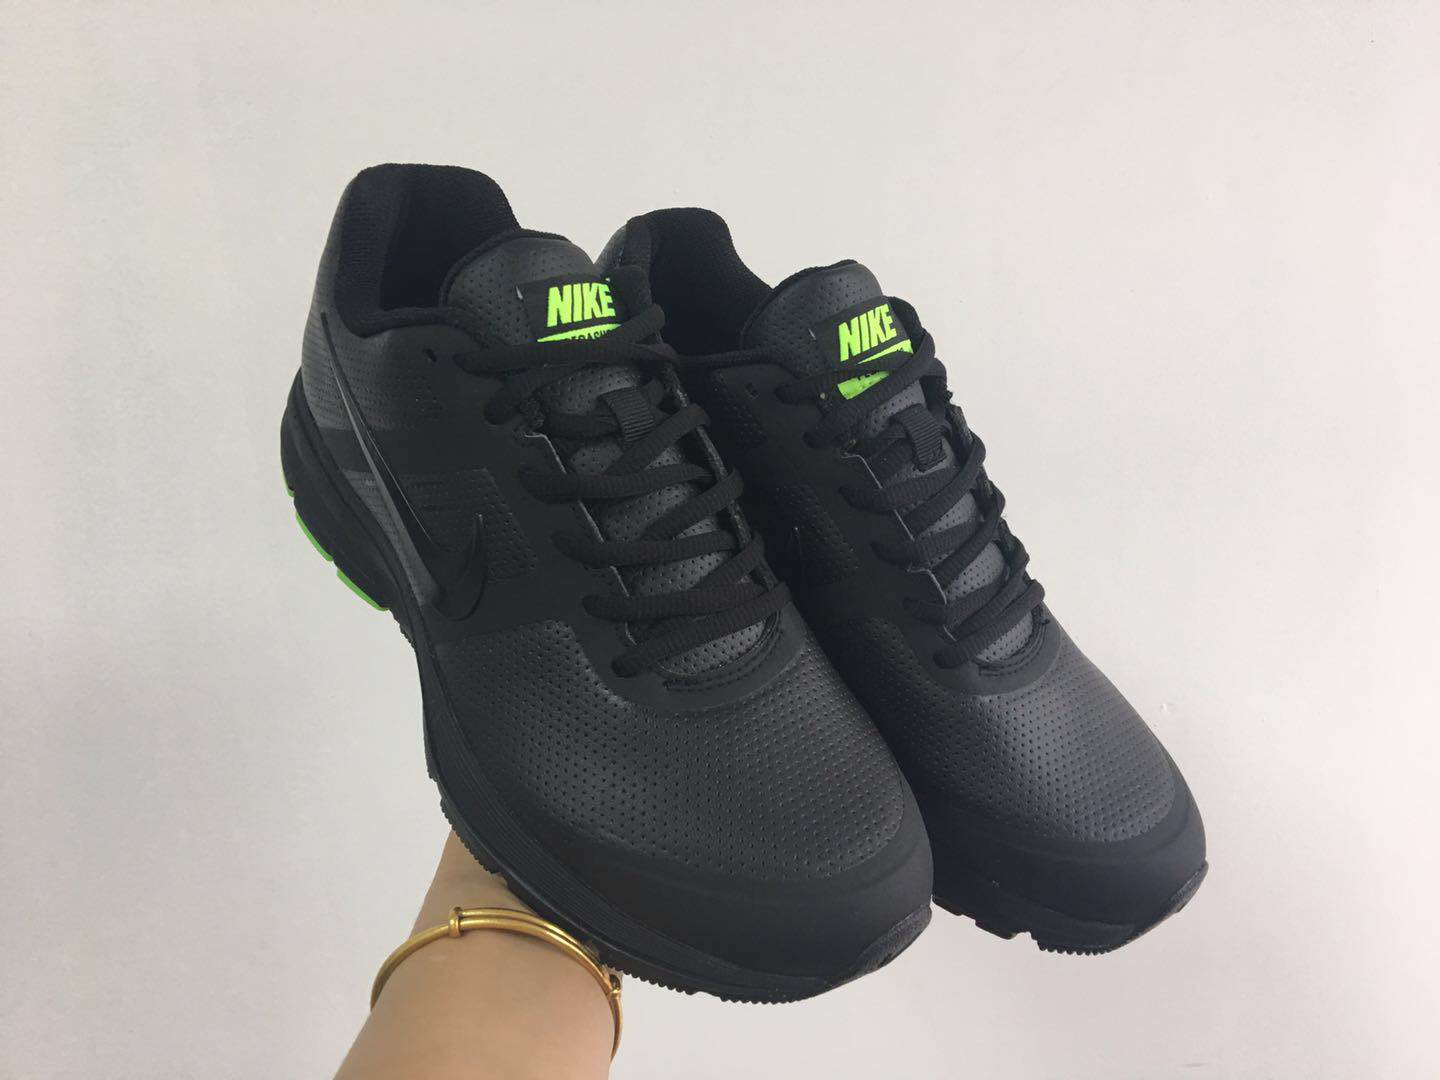 9c8b34952dc5 Inexpensive Nike Lunareclipes Shoes For Sale